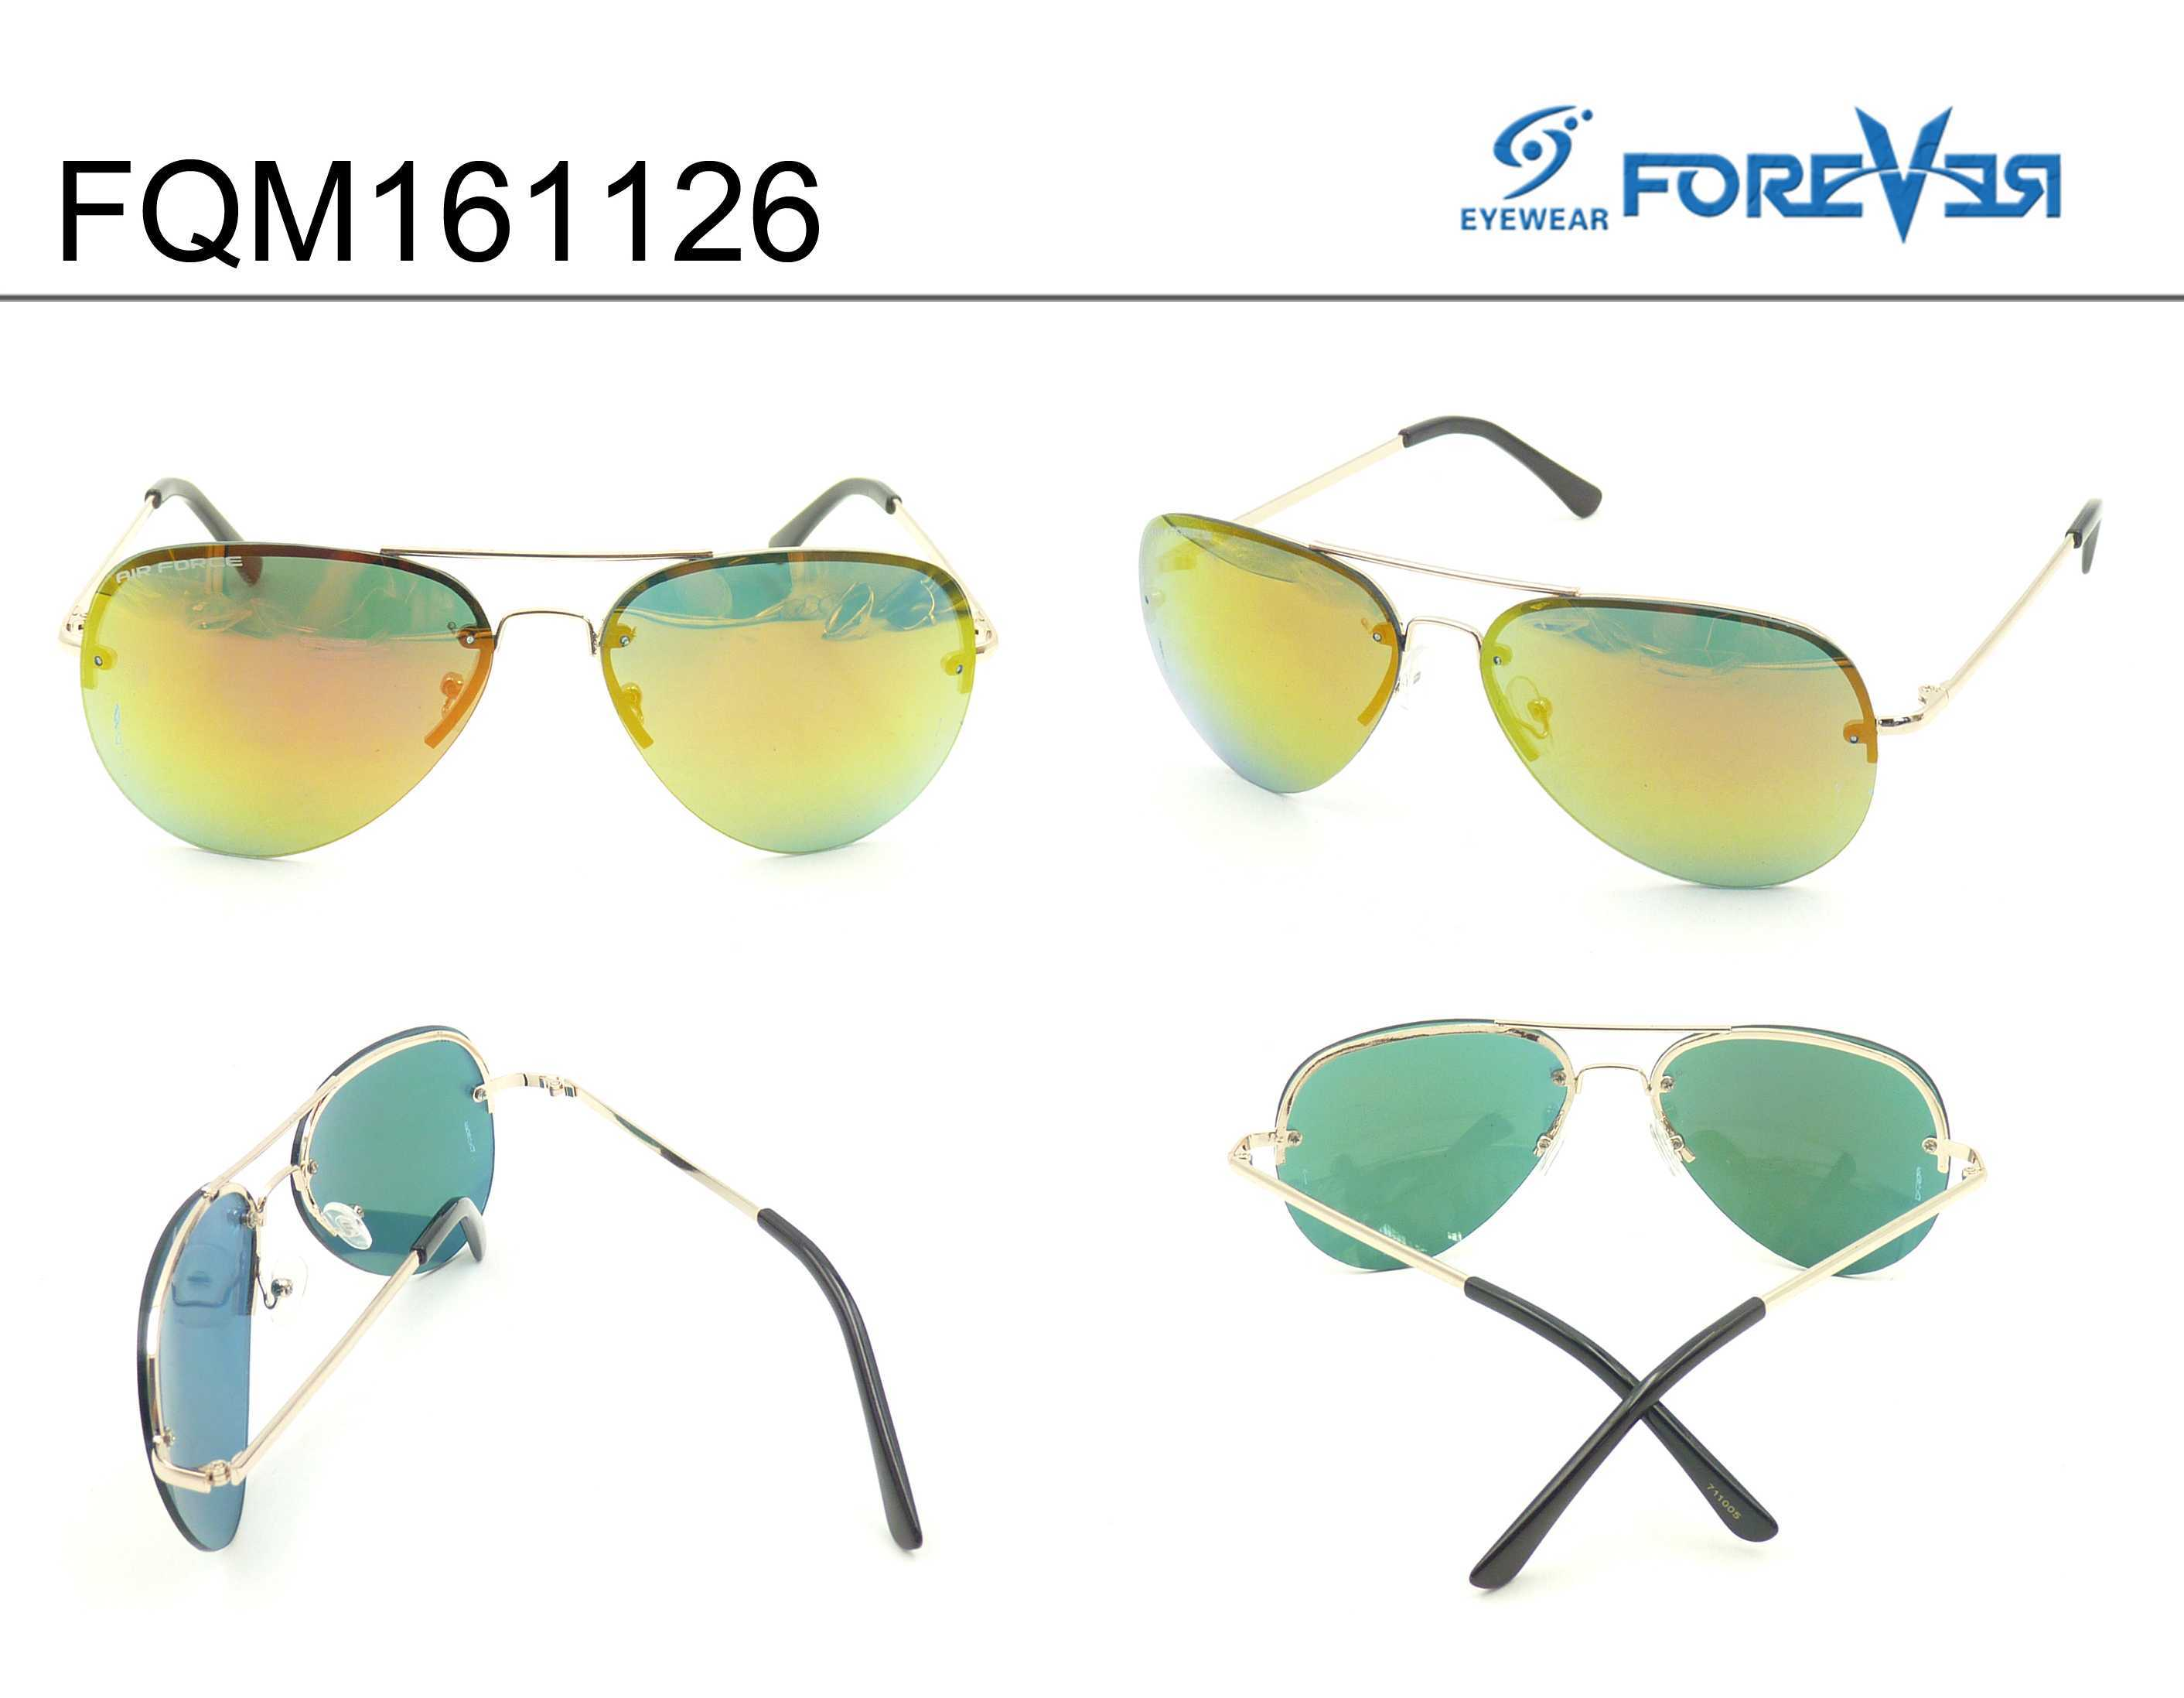 Fqm161126 New Design Good Quality Hotsale Unisex Metal Sunglasses